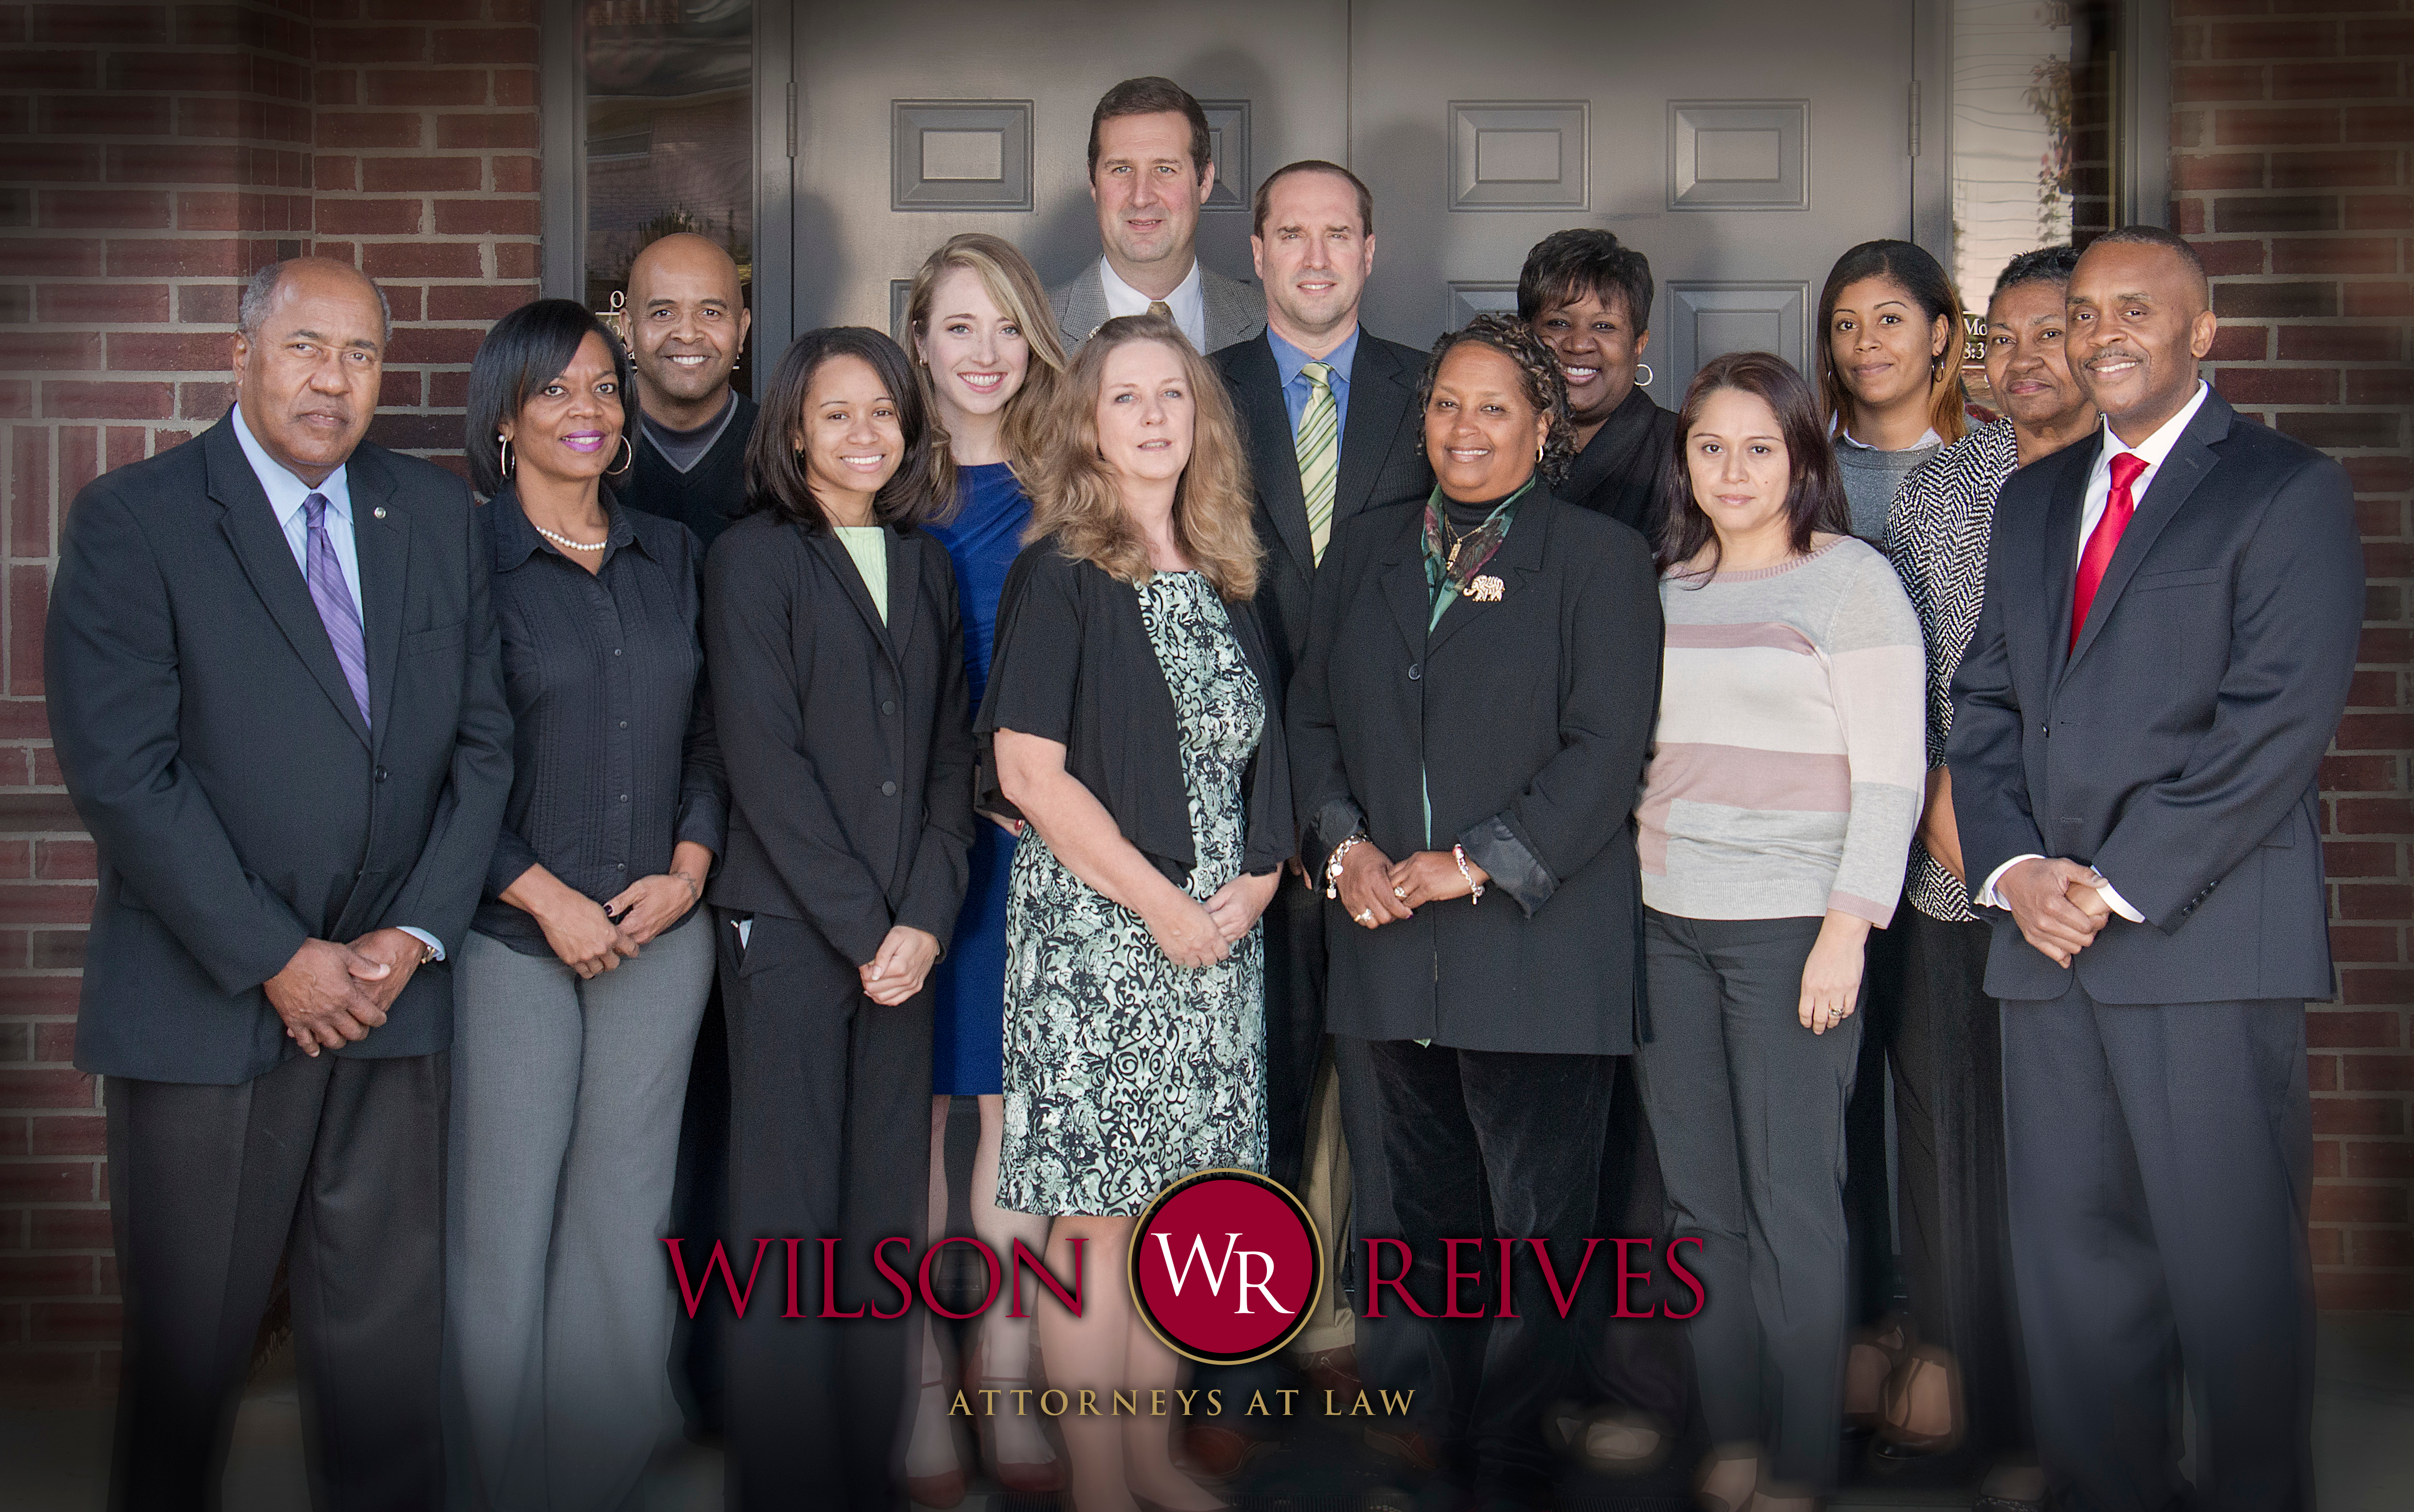 Wilson, Reives & Silverman Attorneys At Law image 1